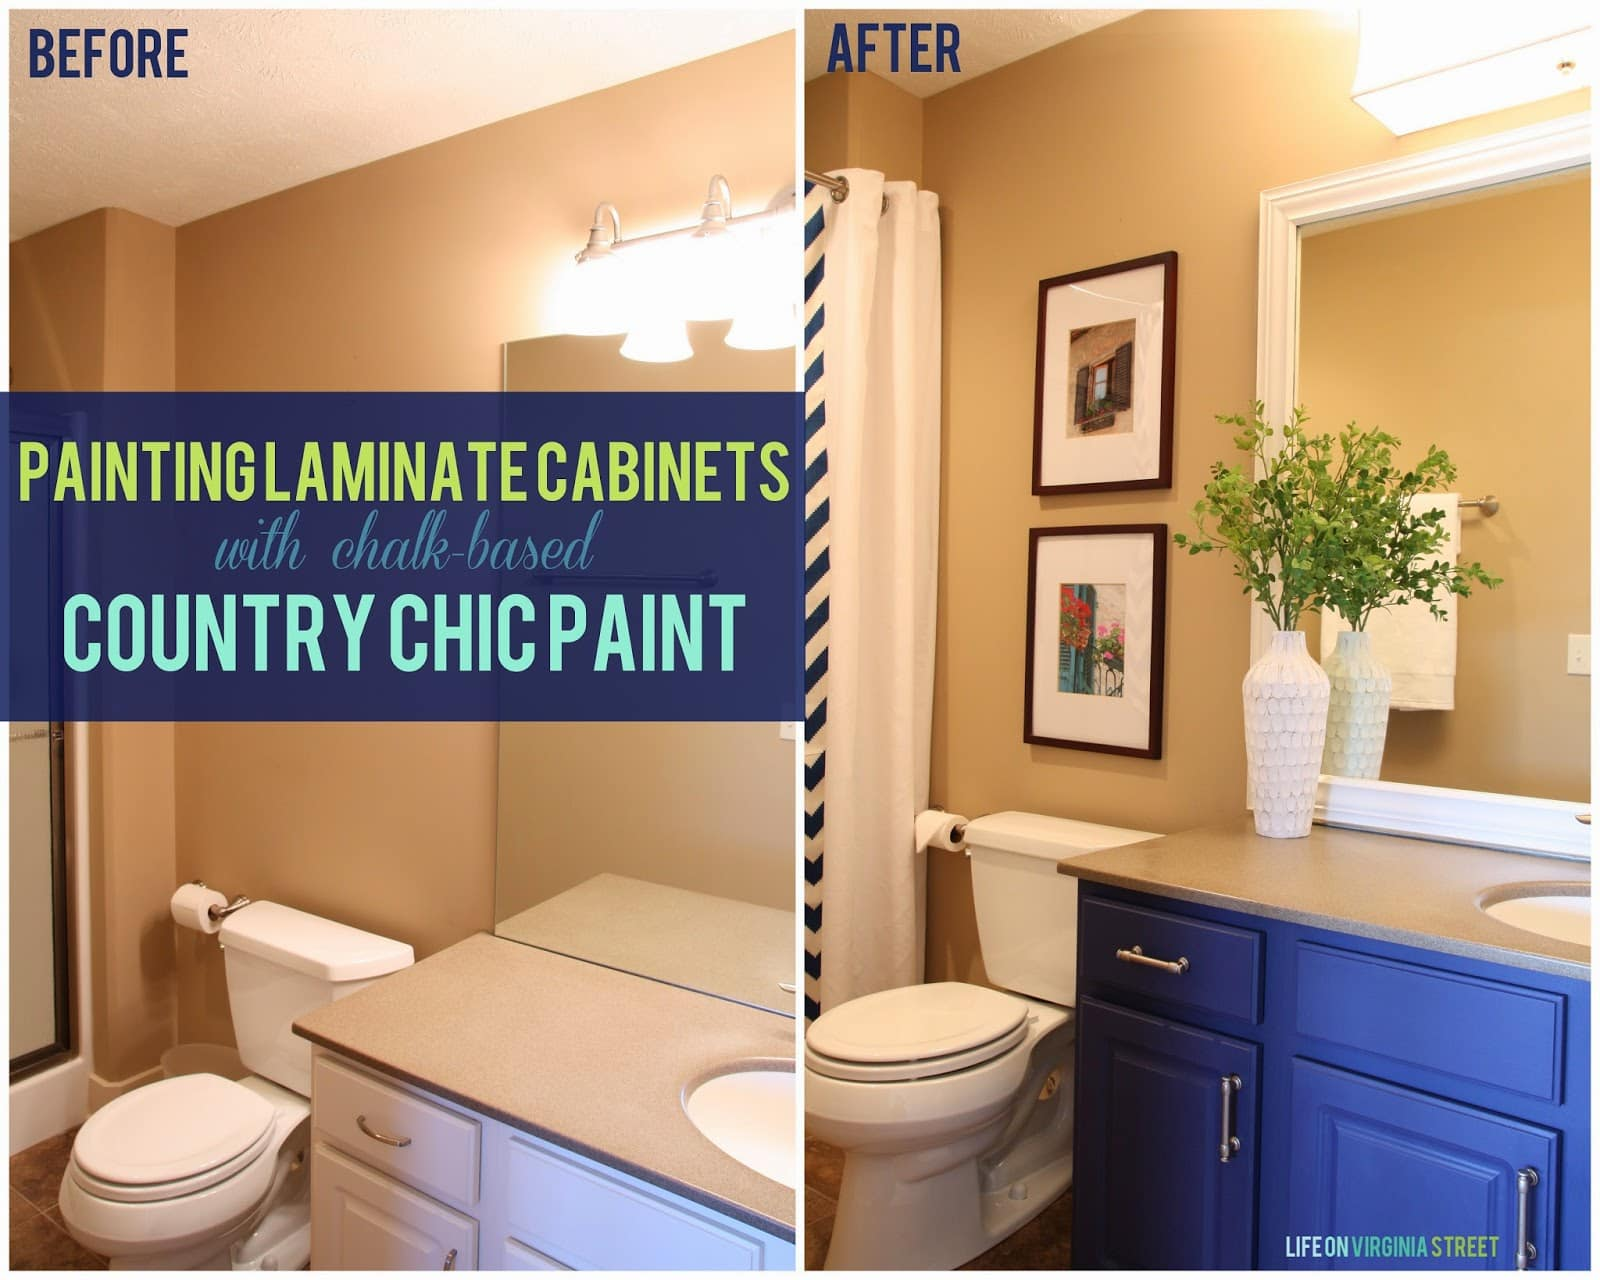 Painted laminate cabinets before and after